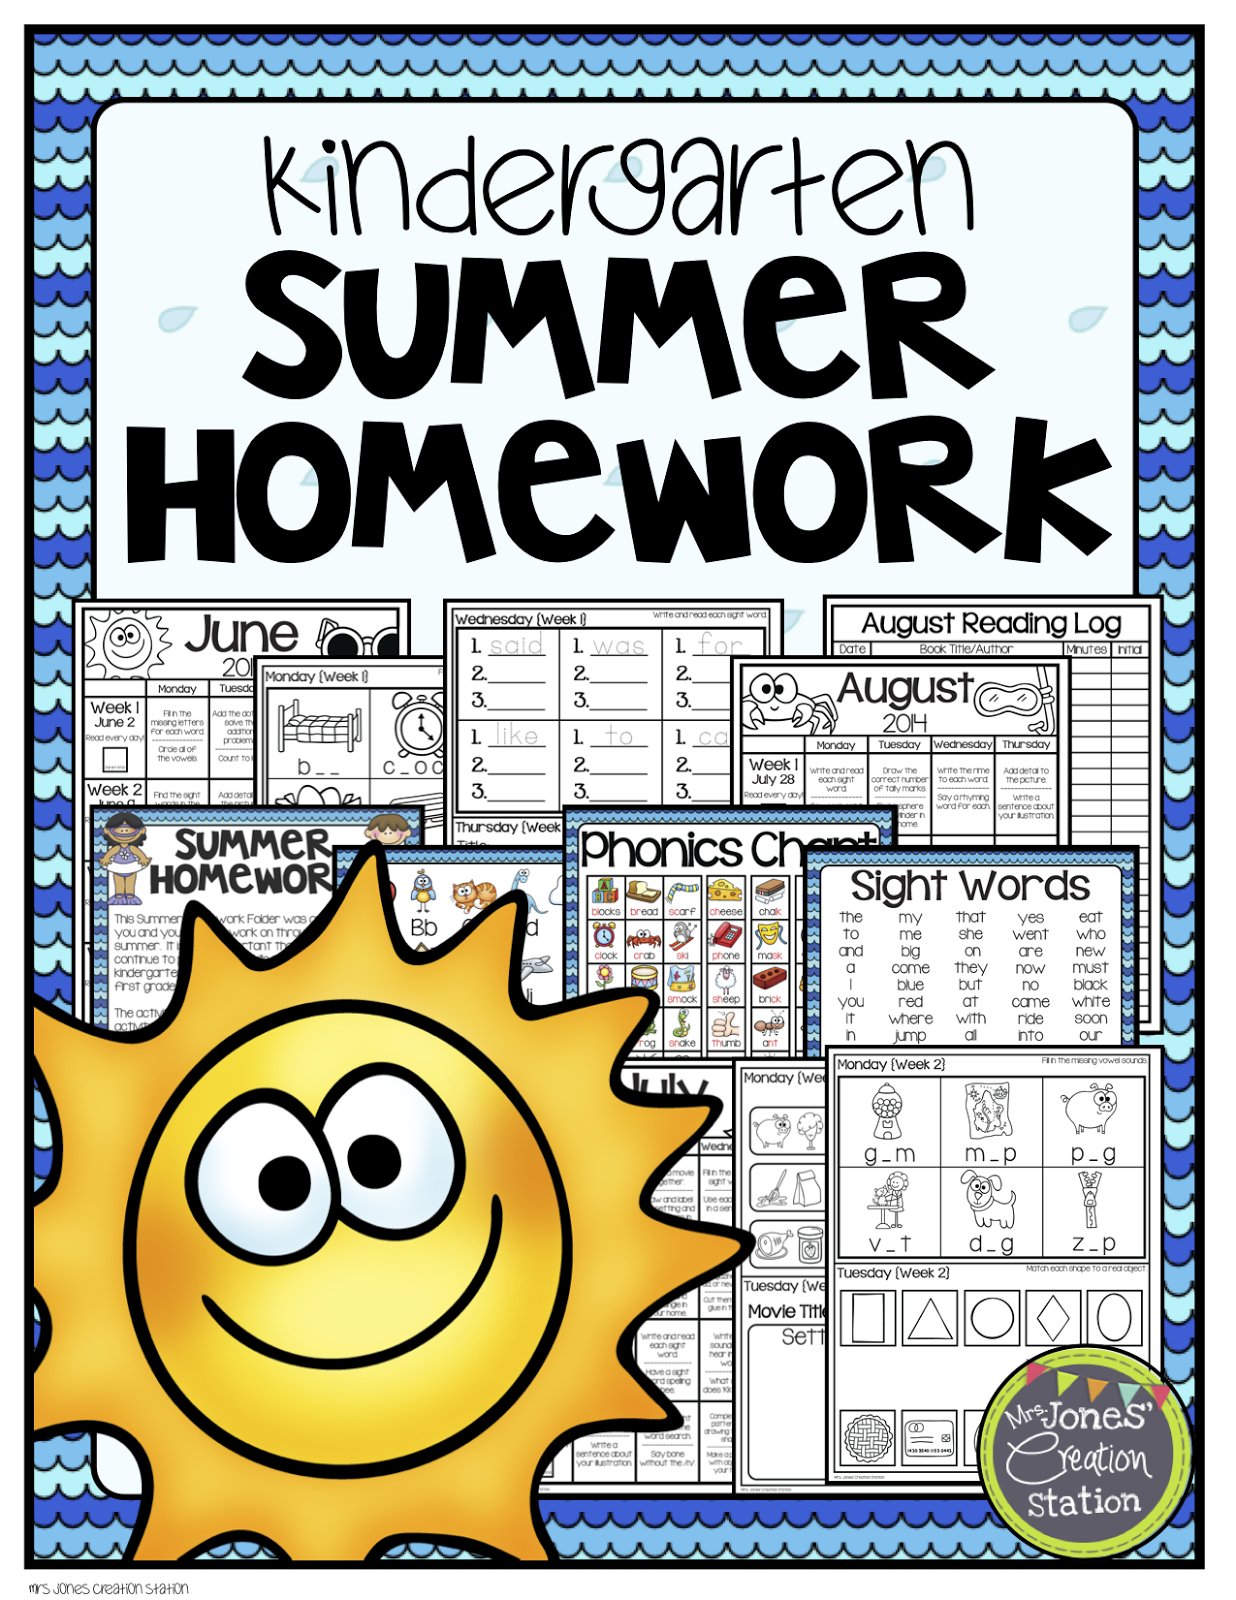 Kindergarten Summer Homework